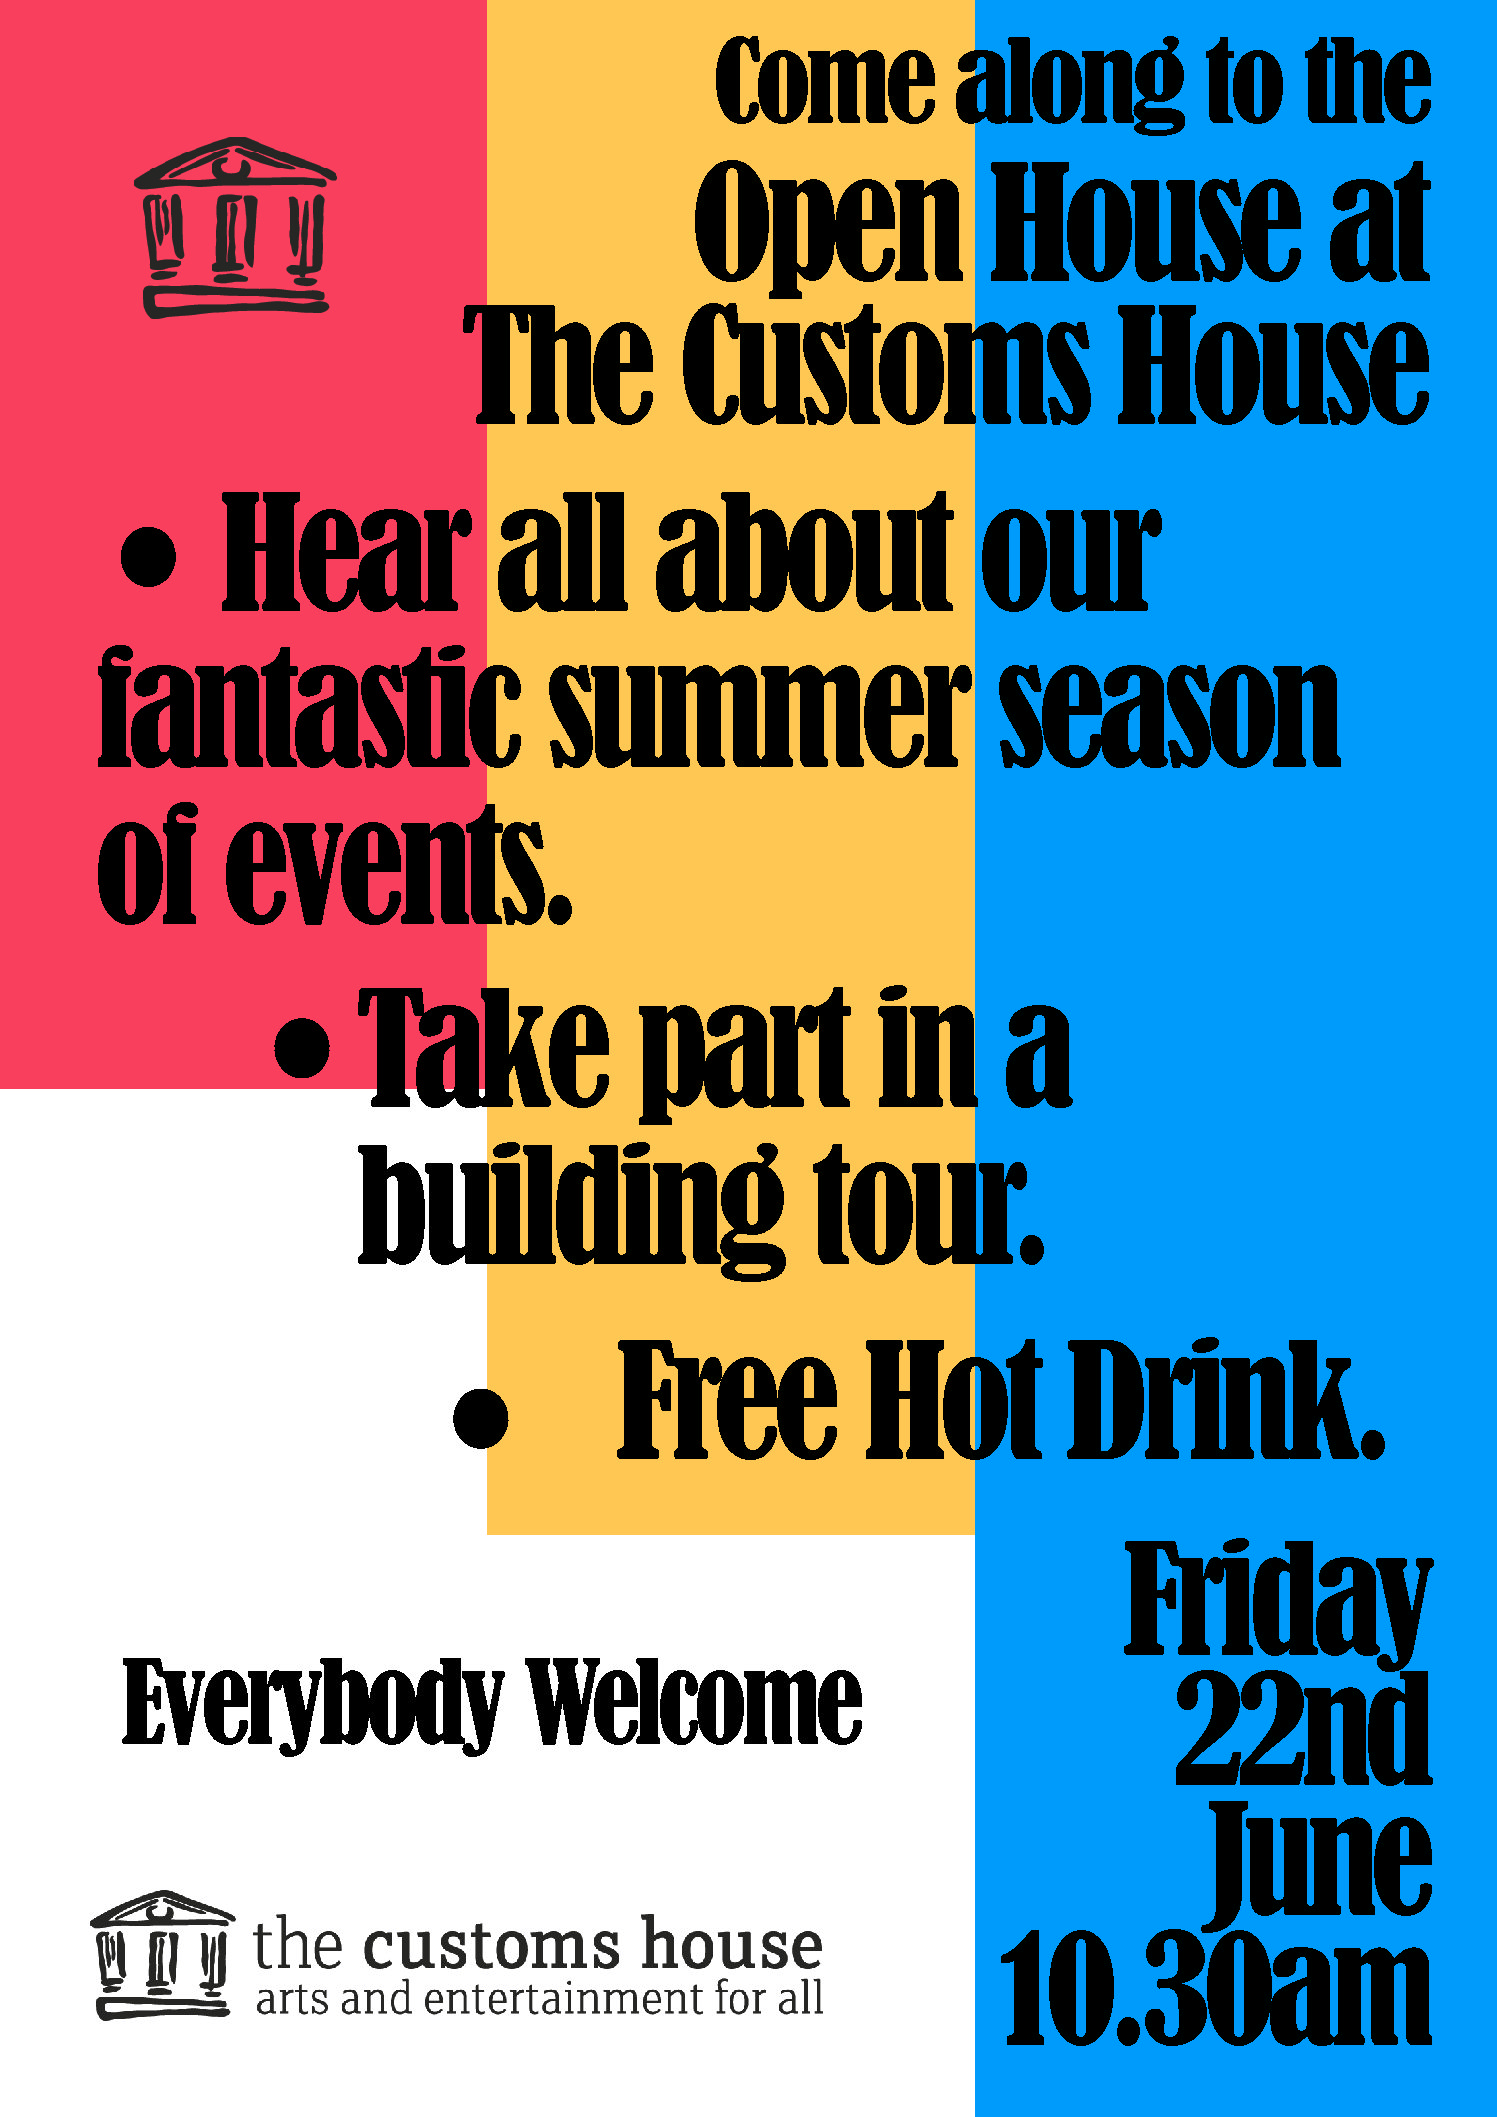 Come Along To Our Open House Event This Friday (22nd June)